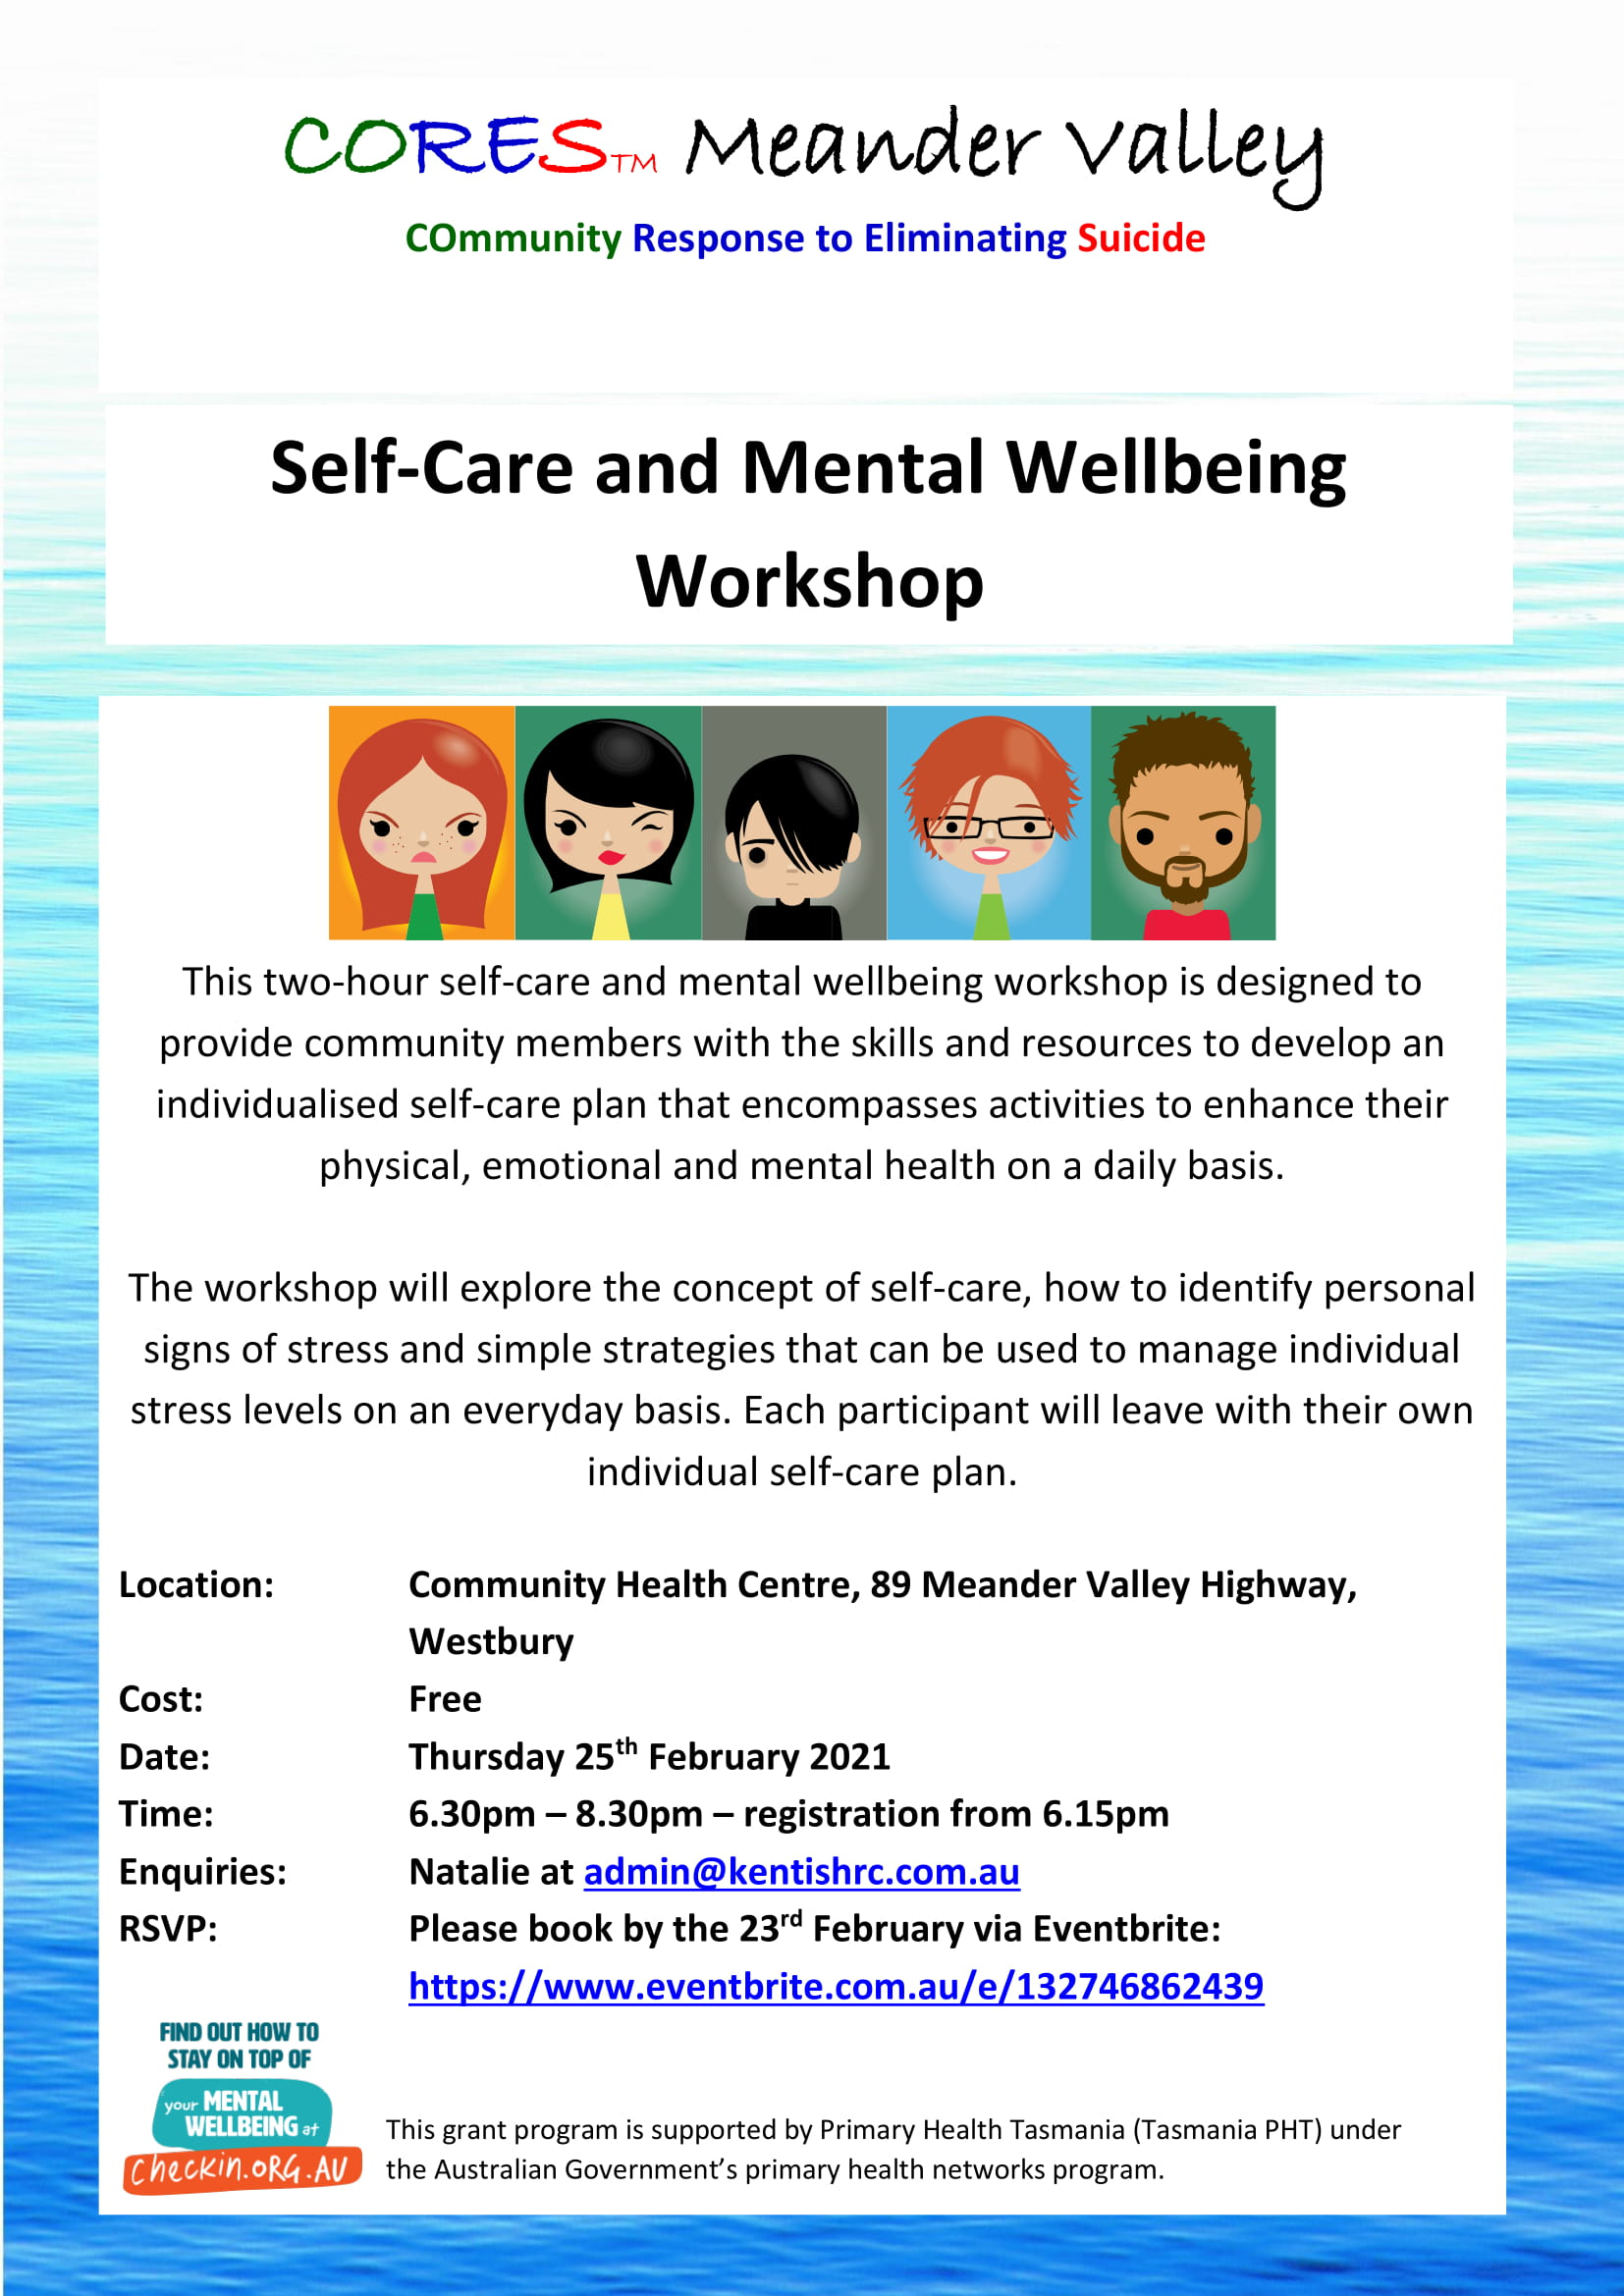 CORES Self-Care and Mental Wellbeing Westbury Feb 2021 fb